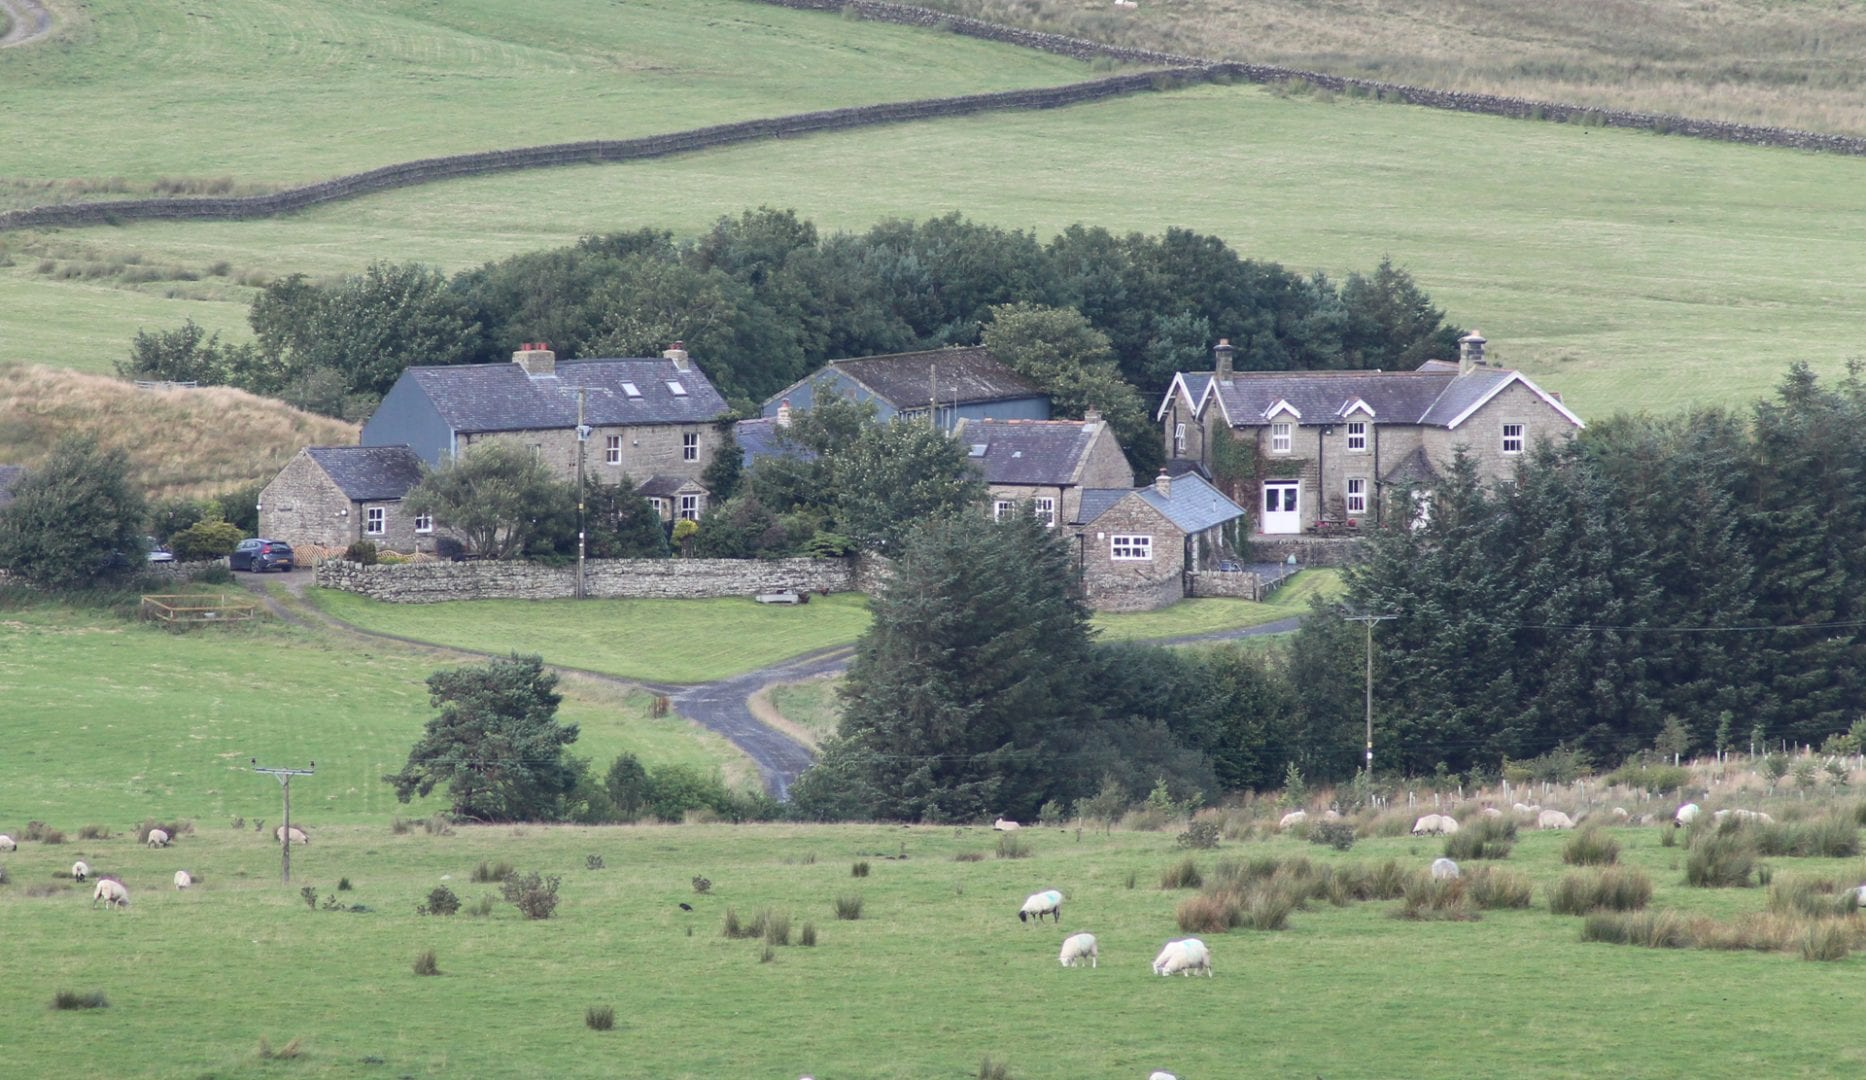 Gibbs Hill Farm Bunkhouse on Hadrians wall in Northumberland